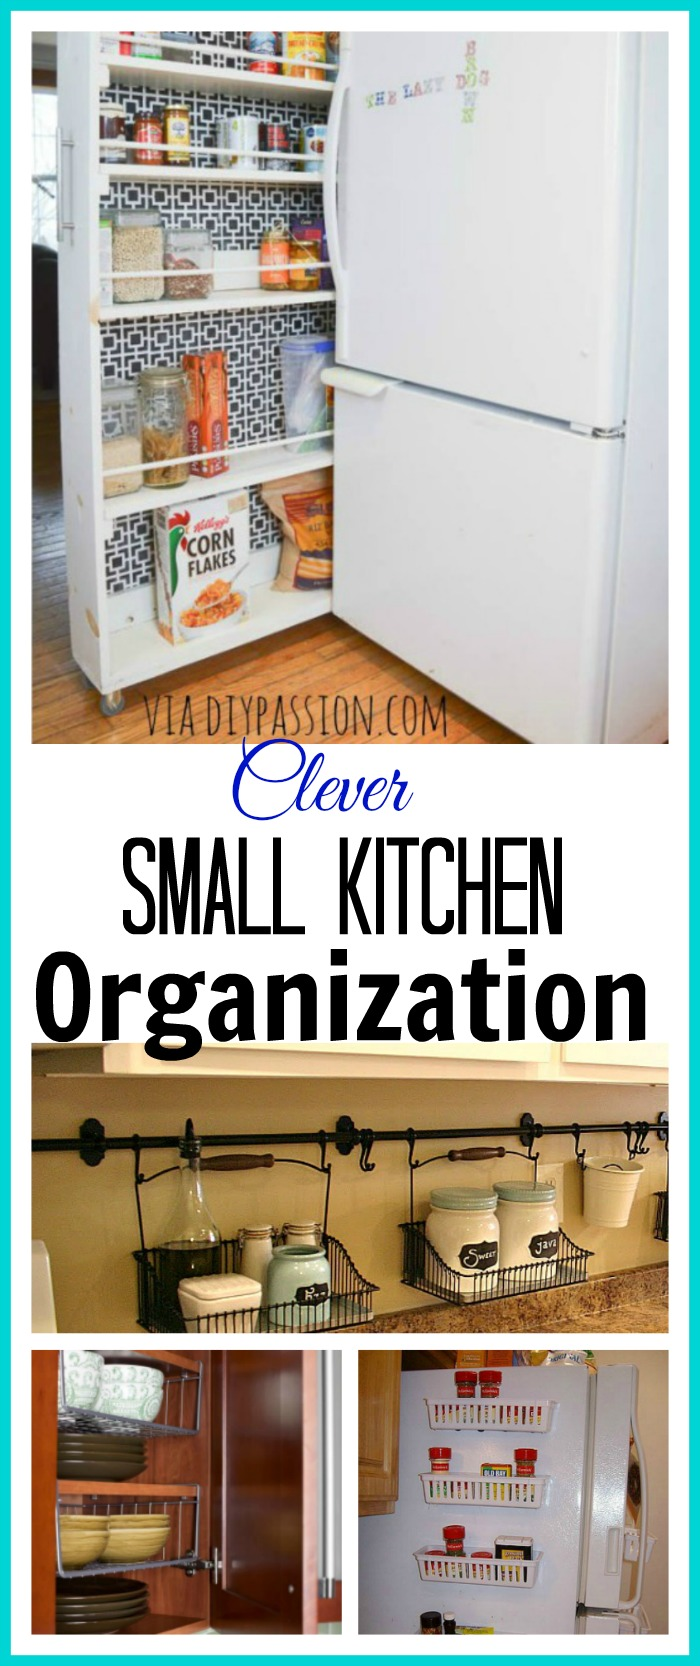 Really clever ideas for organizing your small kitchen and maximizing space!